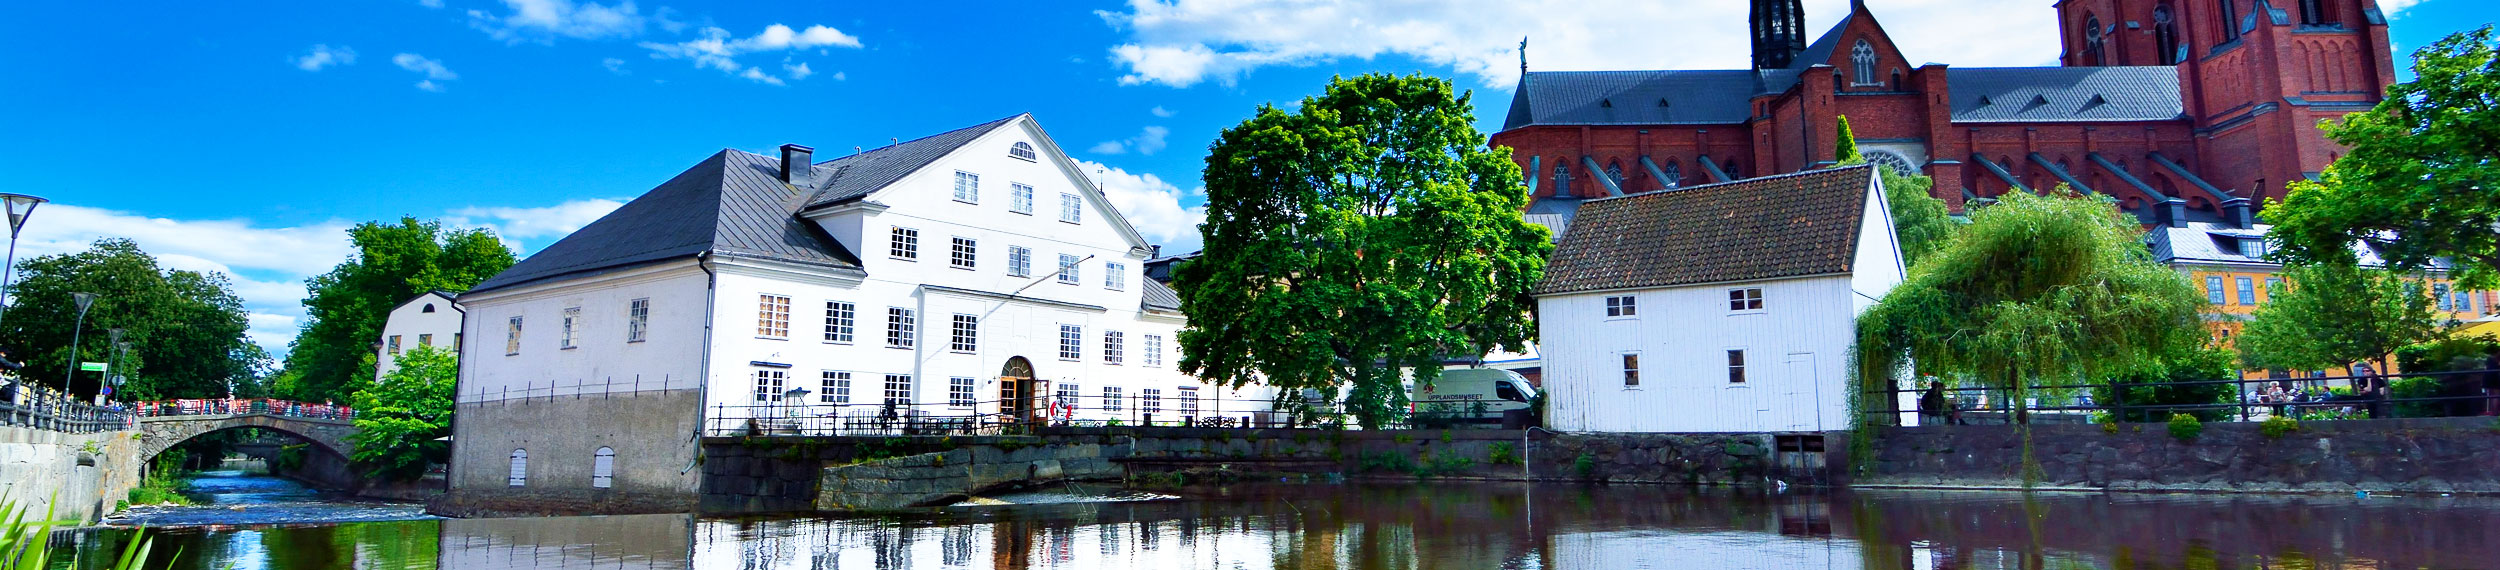 View of Uppsala Cathedral and buildings near the river in Uppsala Sweden.